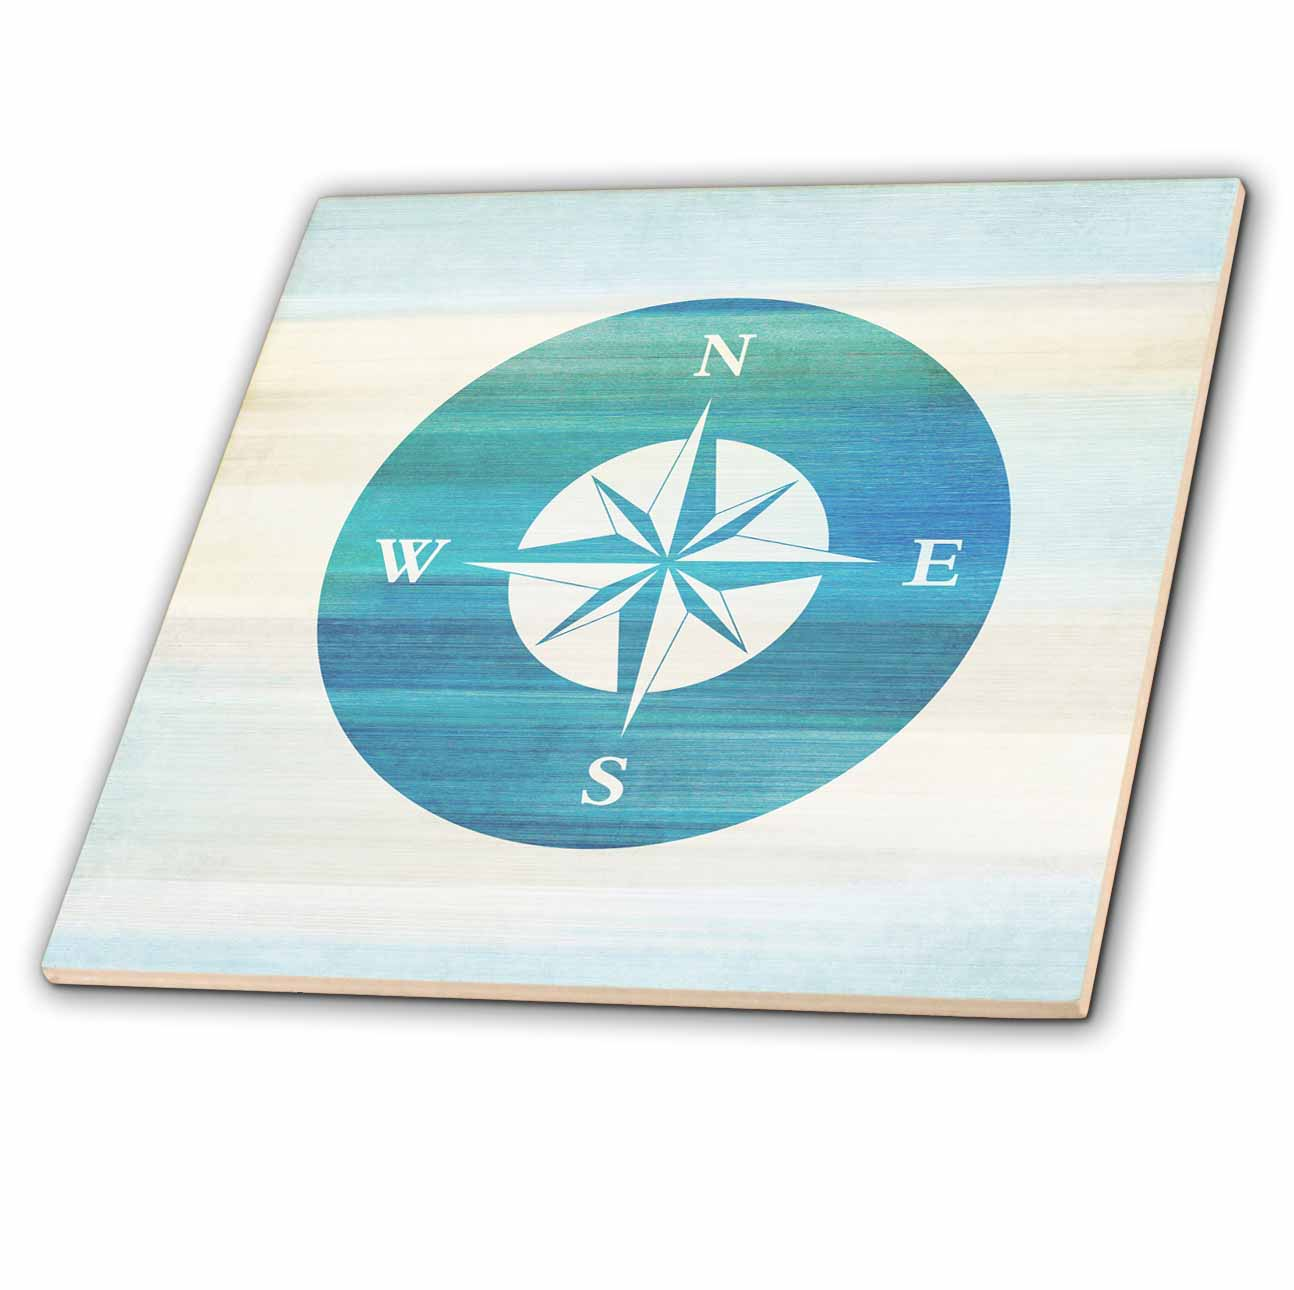 3dRose Aqua Nautical Compass beach theme art - Ceramic Tile, 6-inch